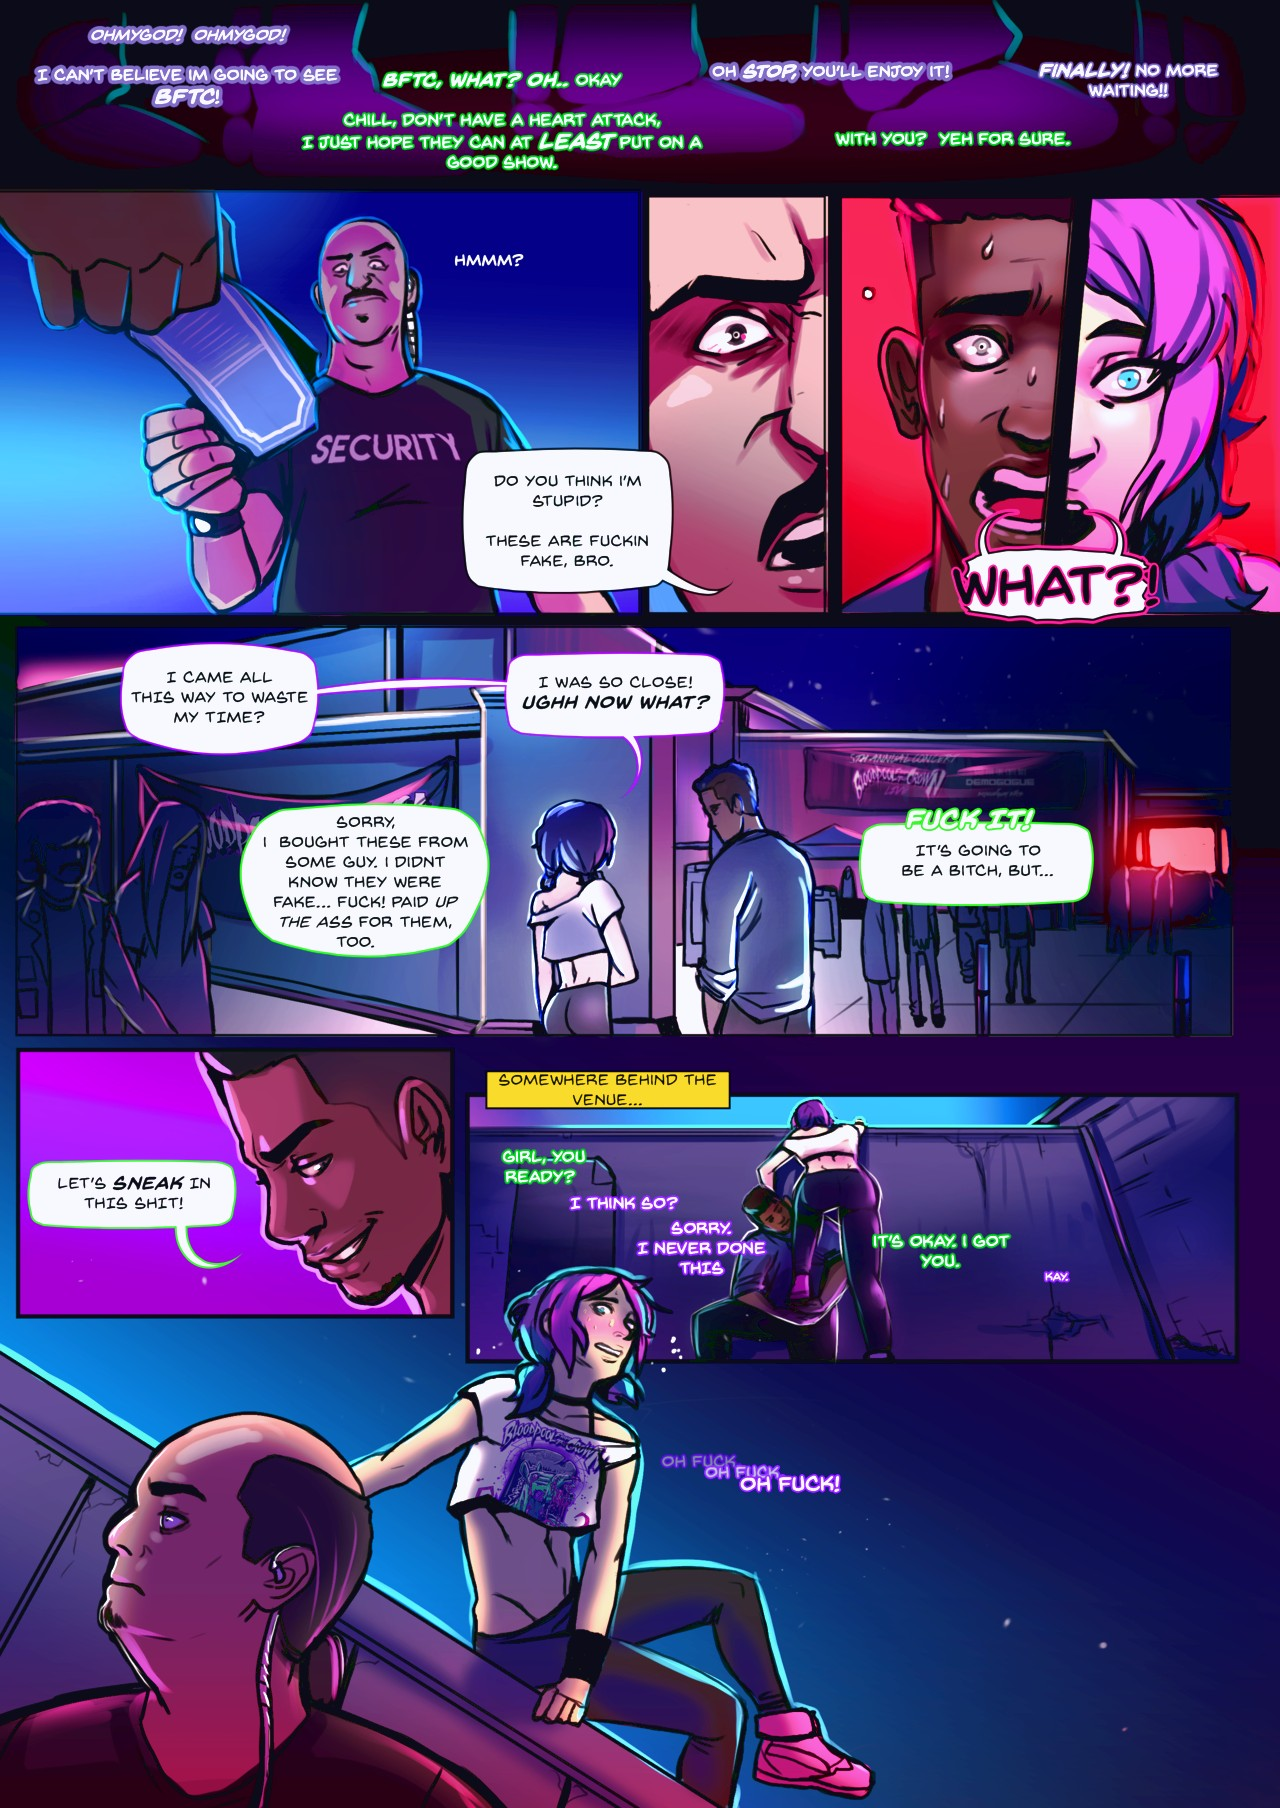 The Backdoor Pass page 06